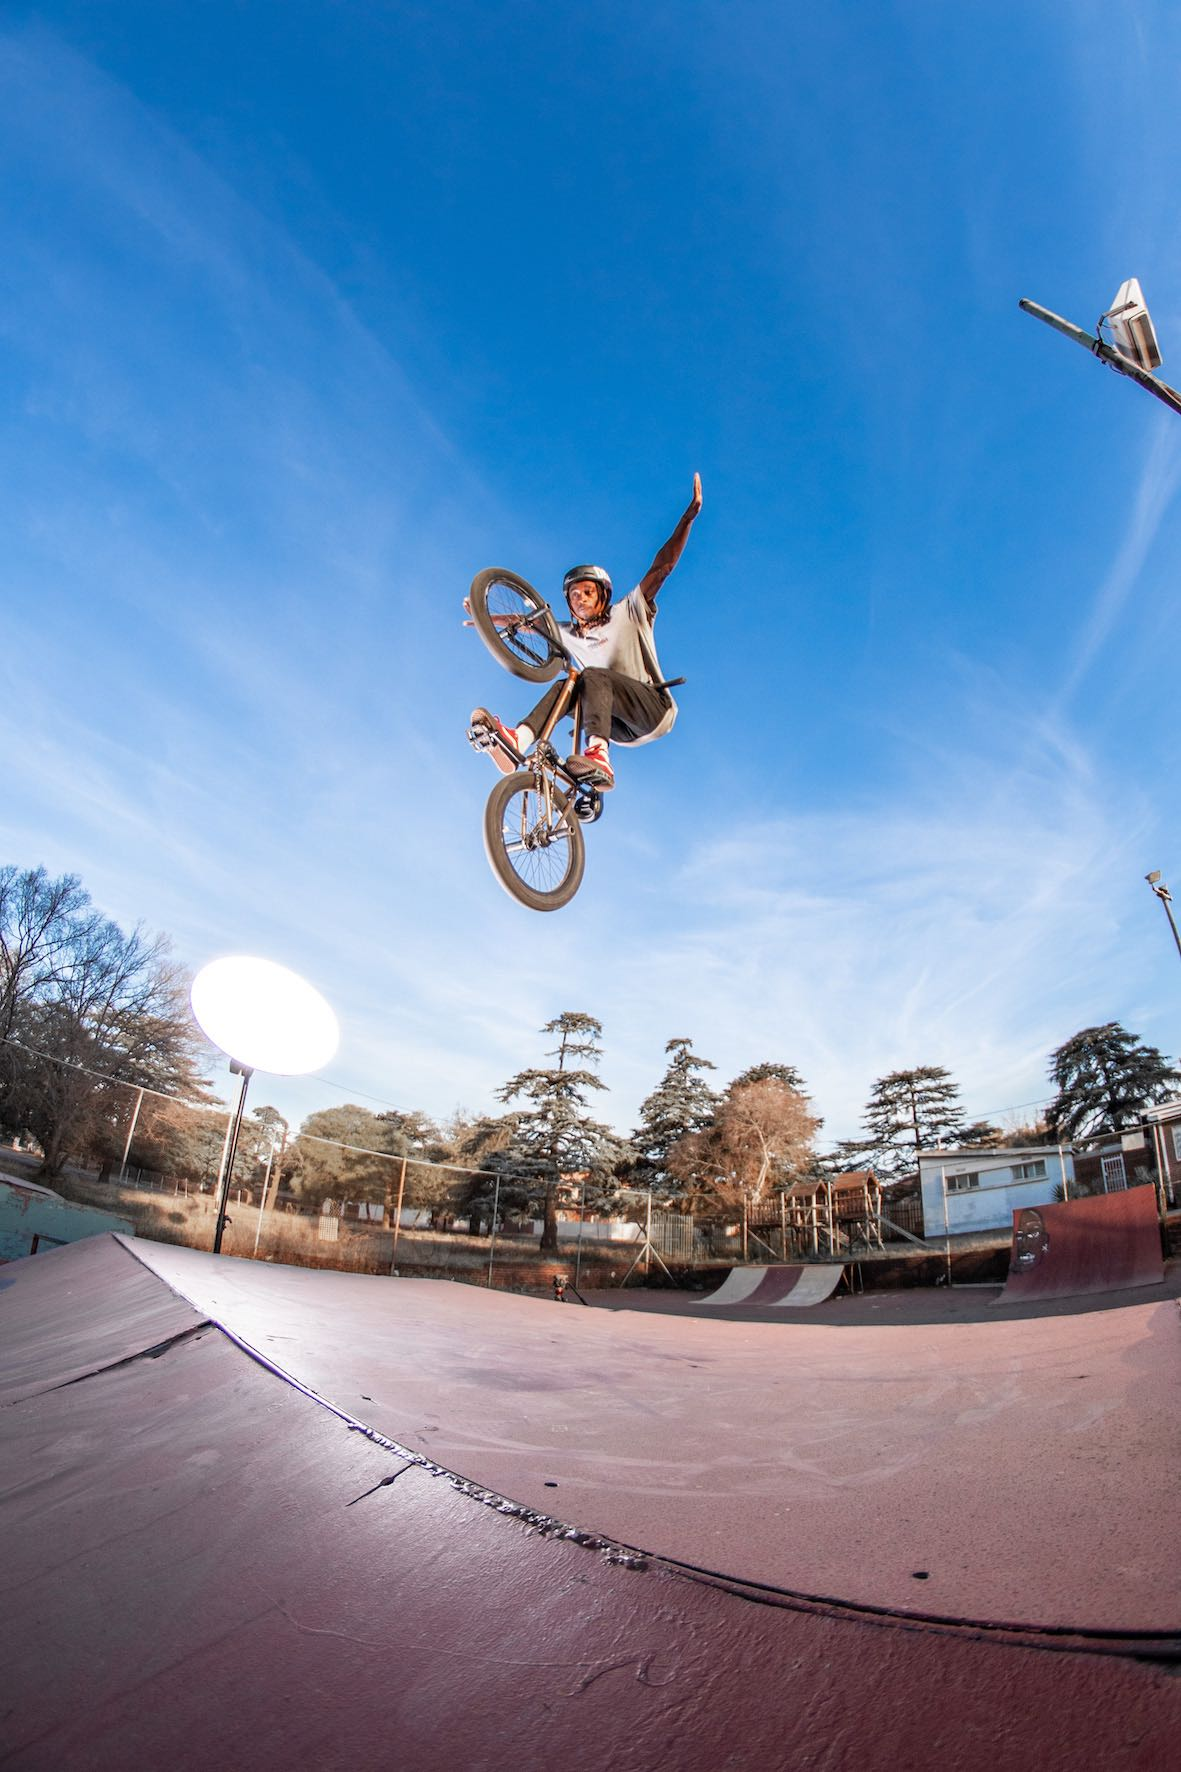 Tuck No-Hander with Nathi Steeze at his local BMX park